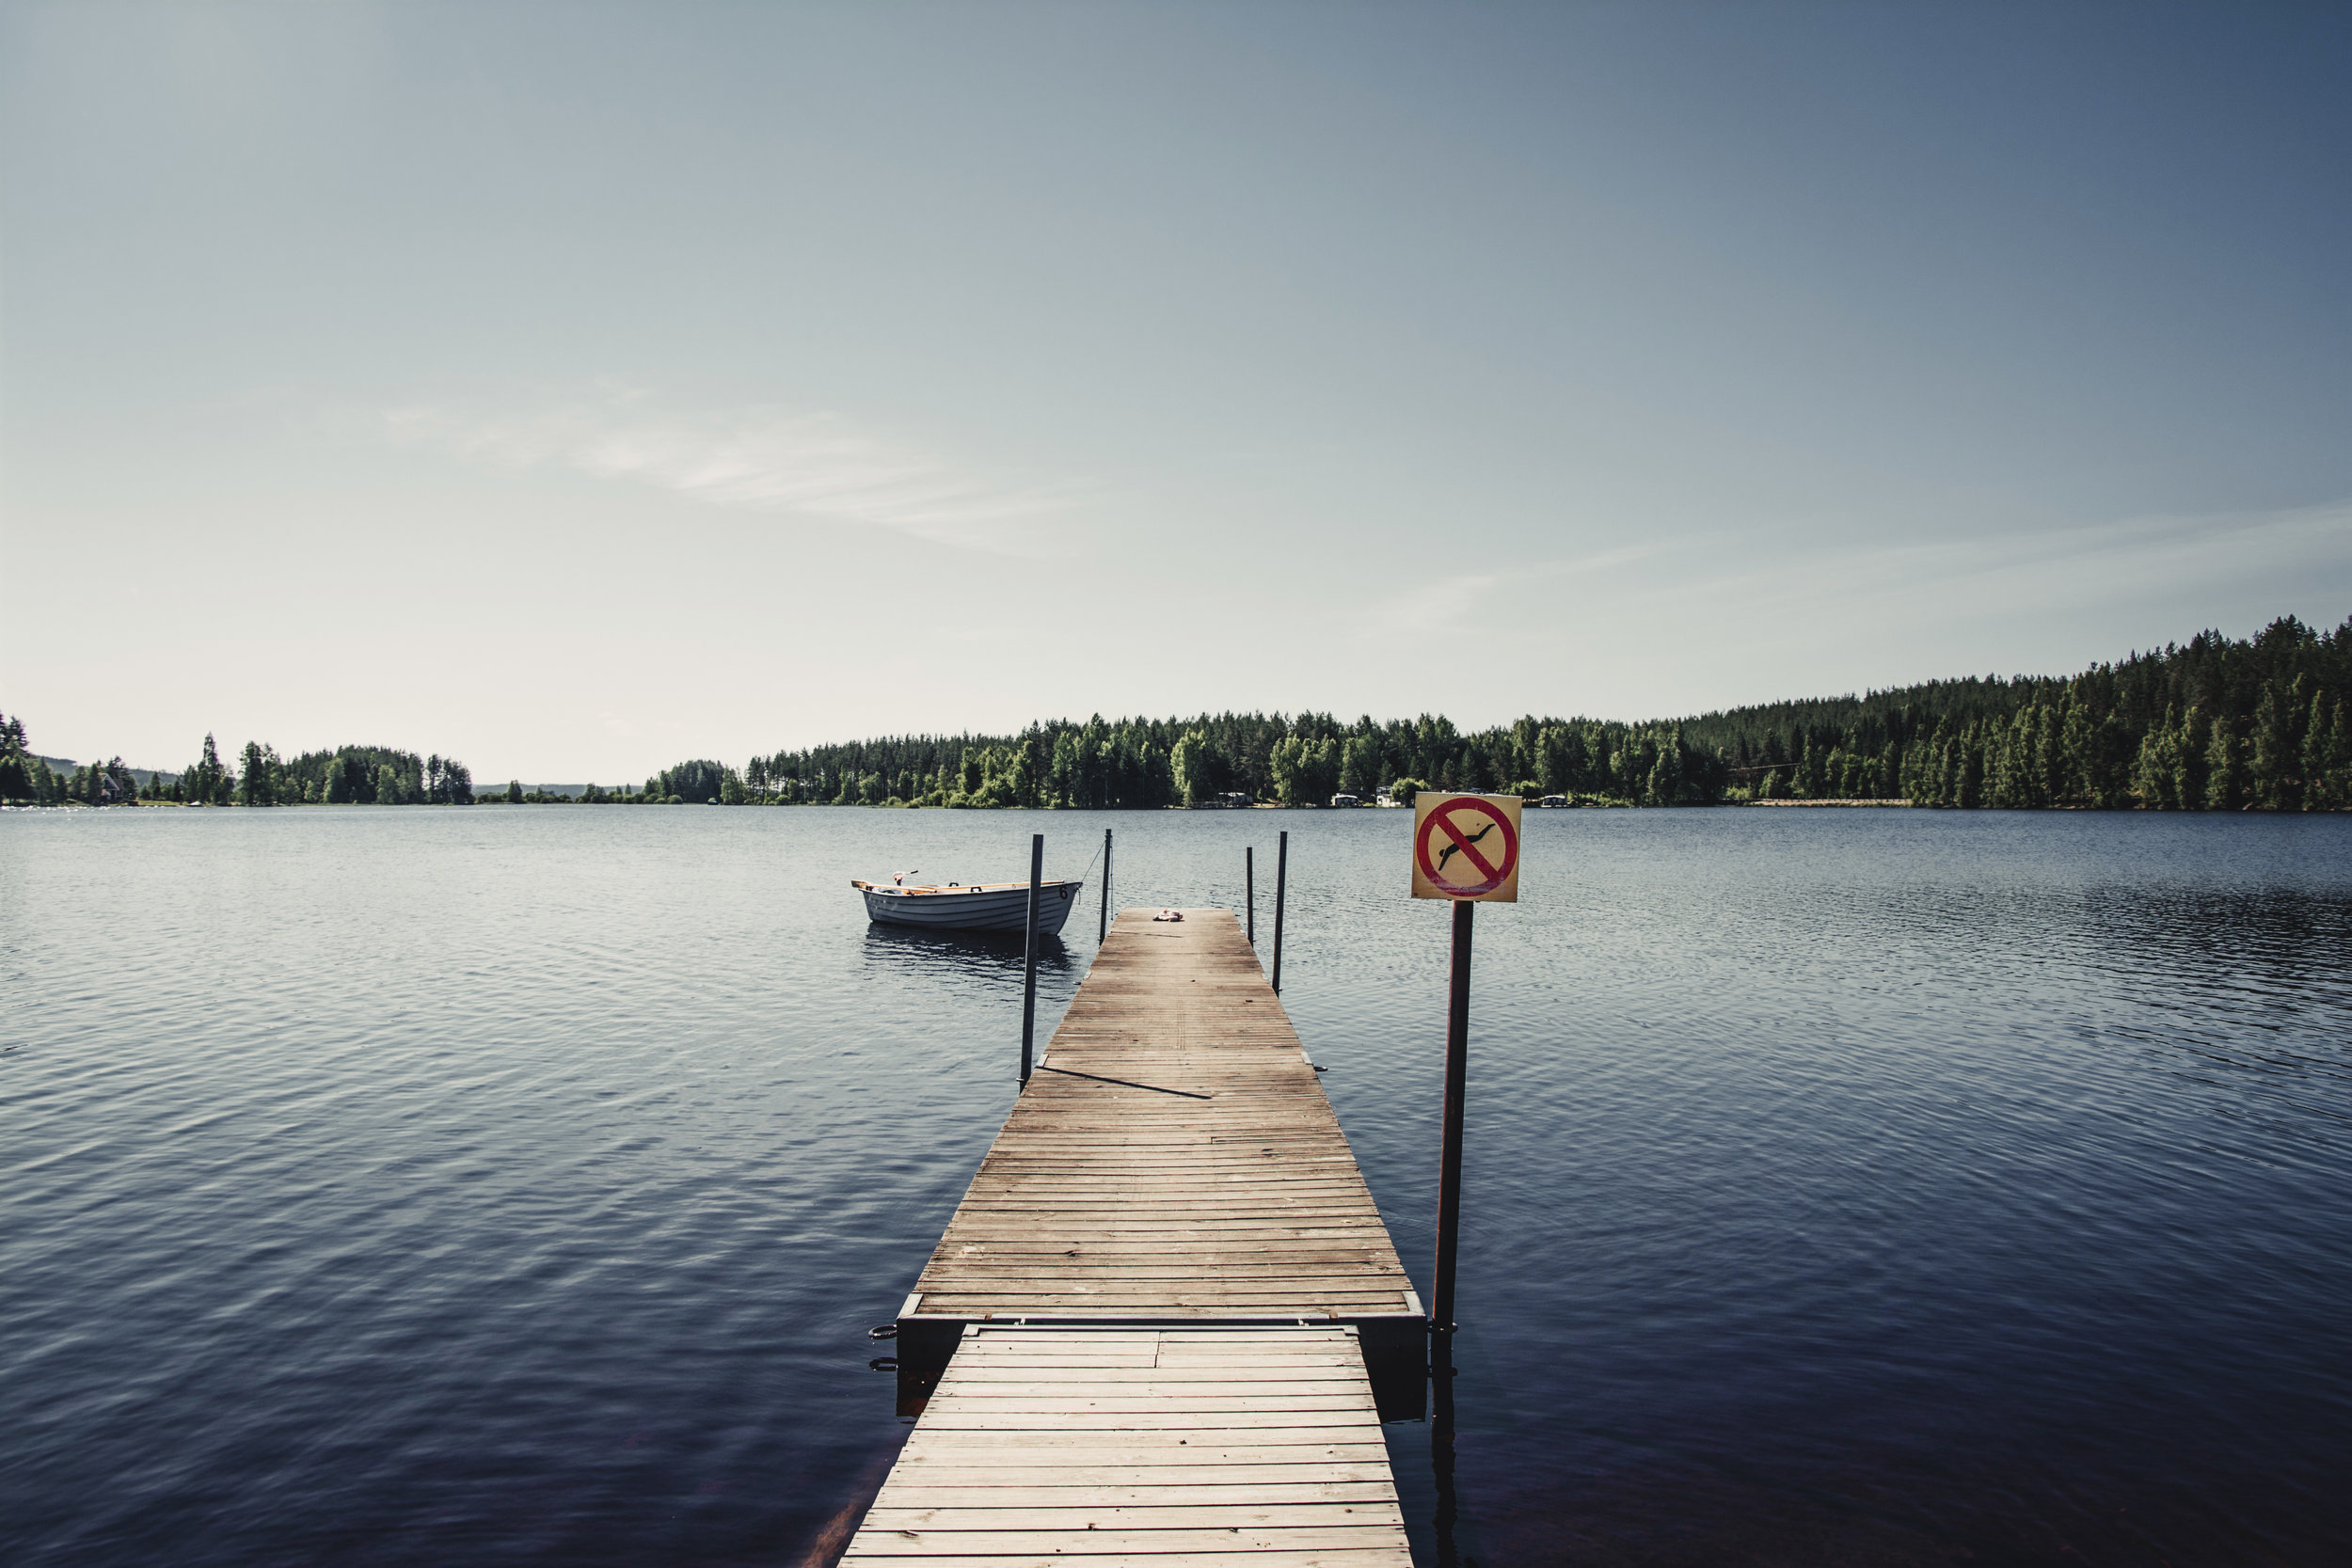 A jetty looks out on Lake Nain from an island in the middle of the water. Uvana, Varmlands, Sweden.